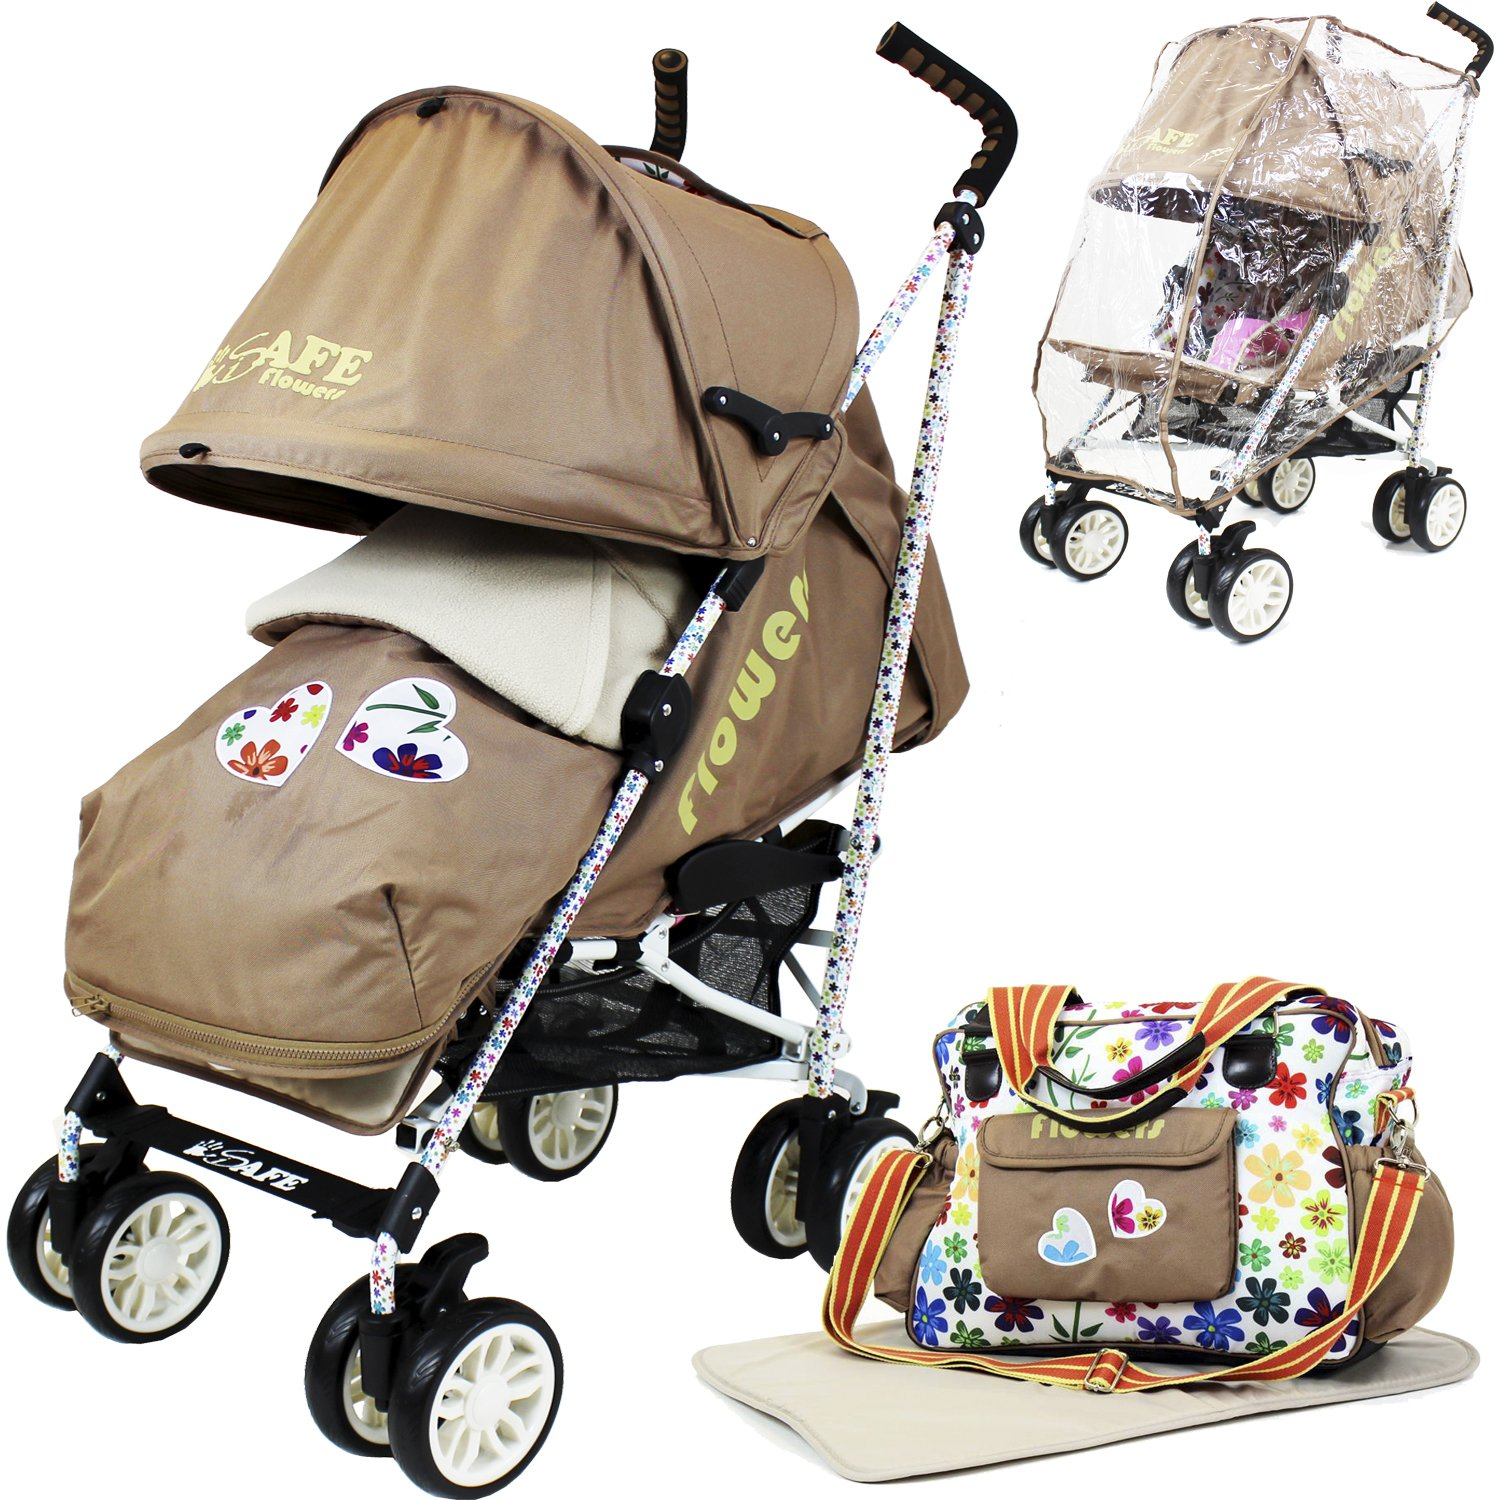 iSafe buggy Stroller Pushchair - Flowers (Complete With Footmuff, Changing Bag, Bumper Bar & Rain cover) Flowers3